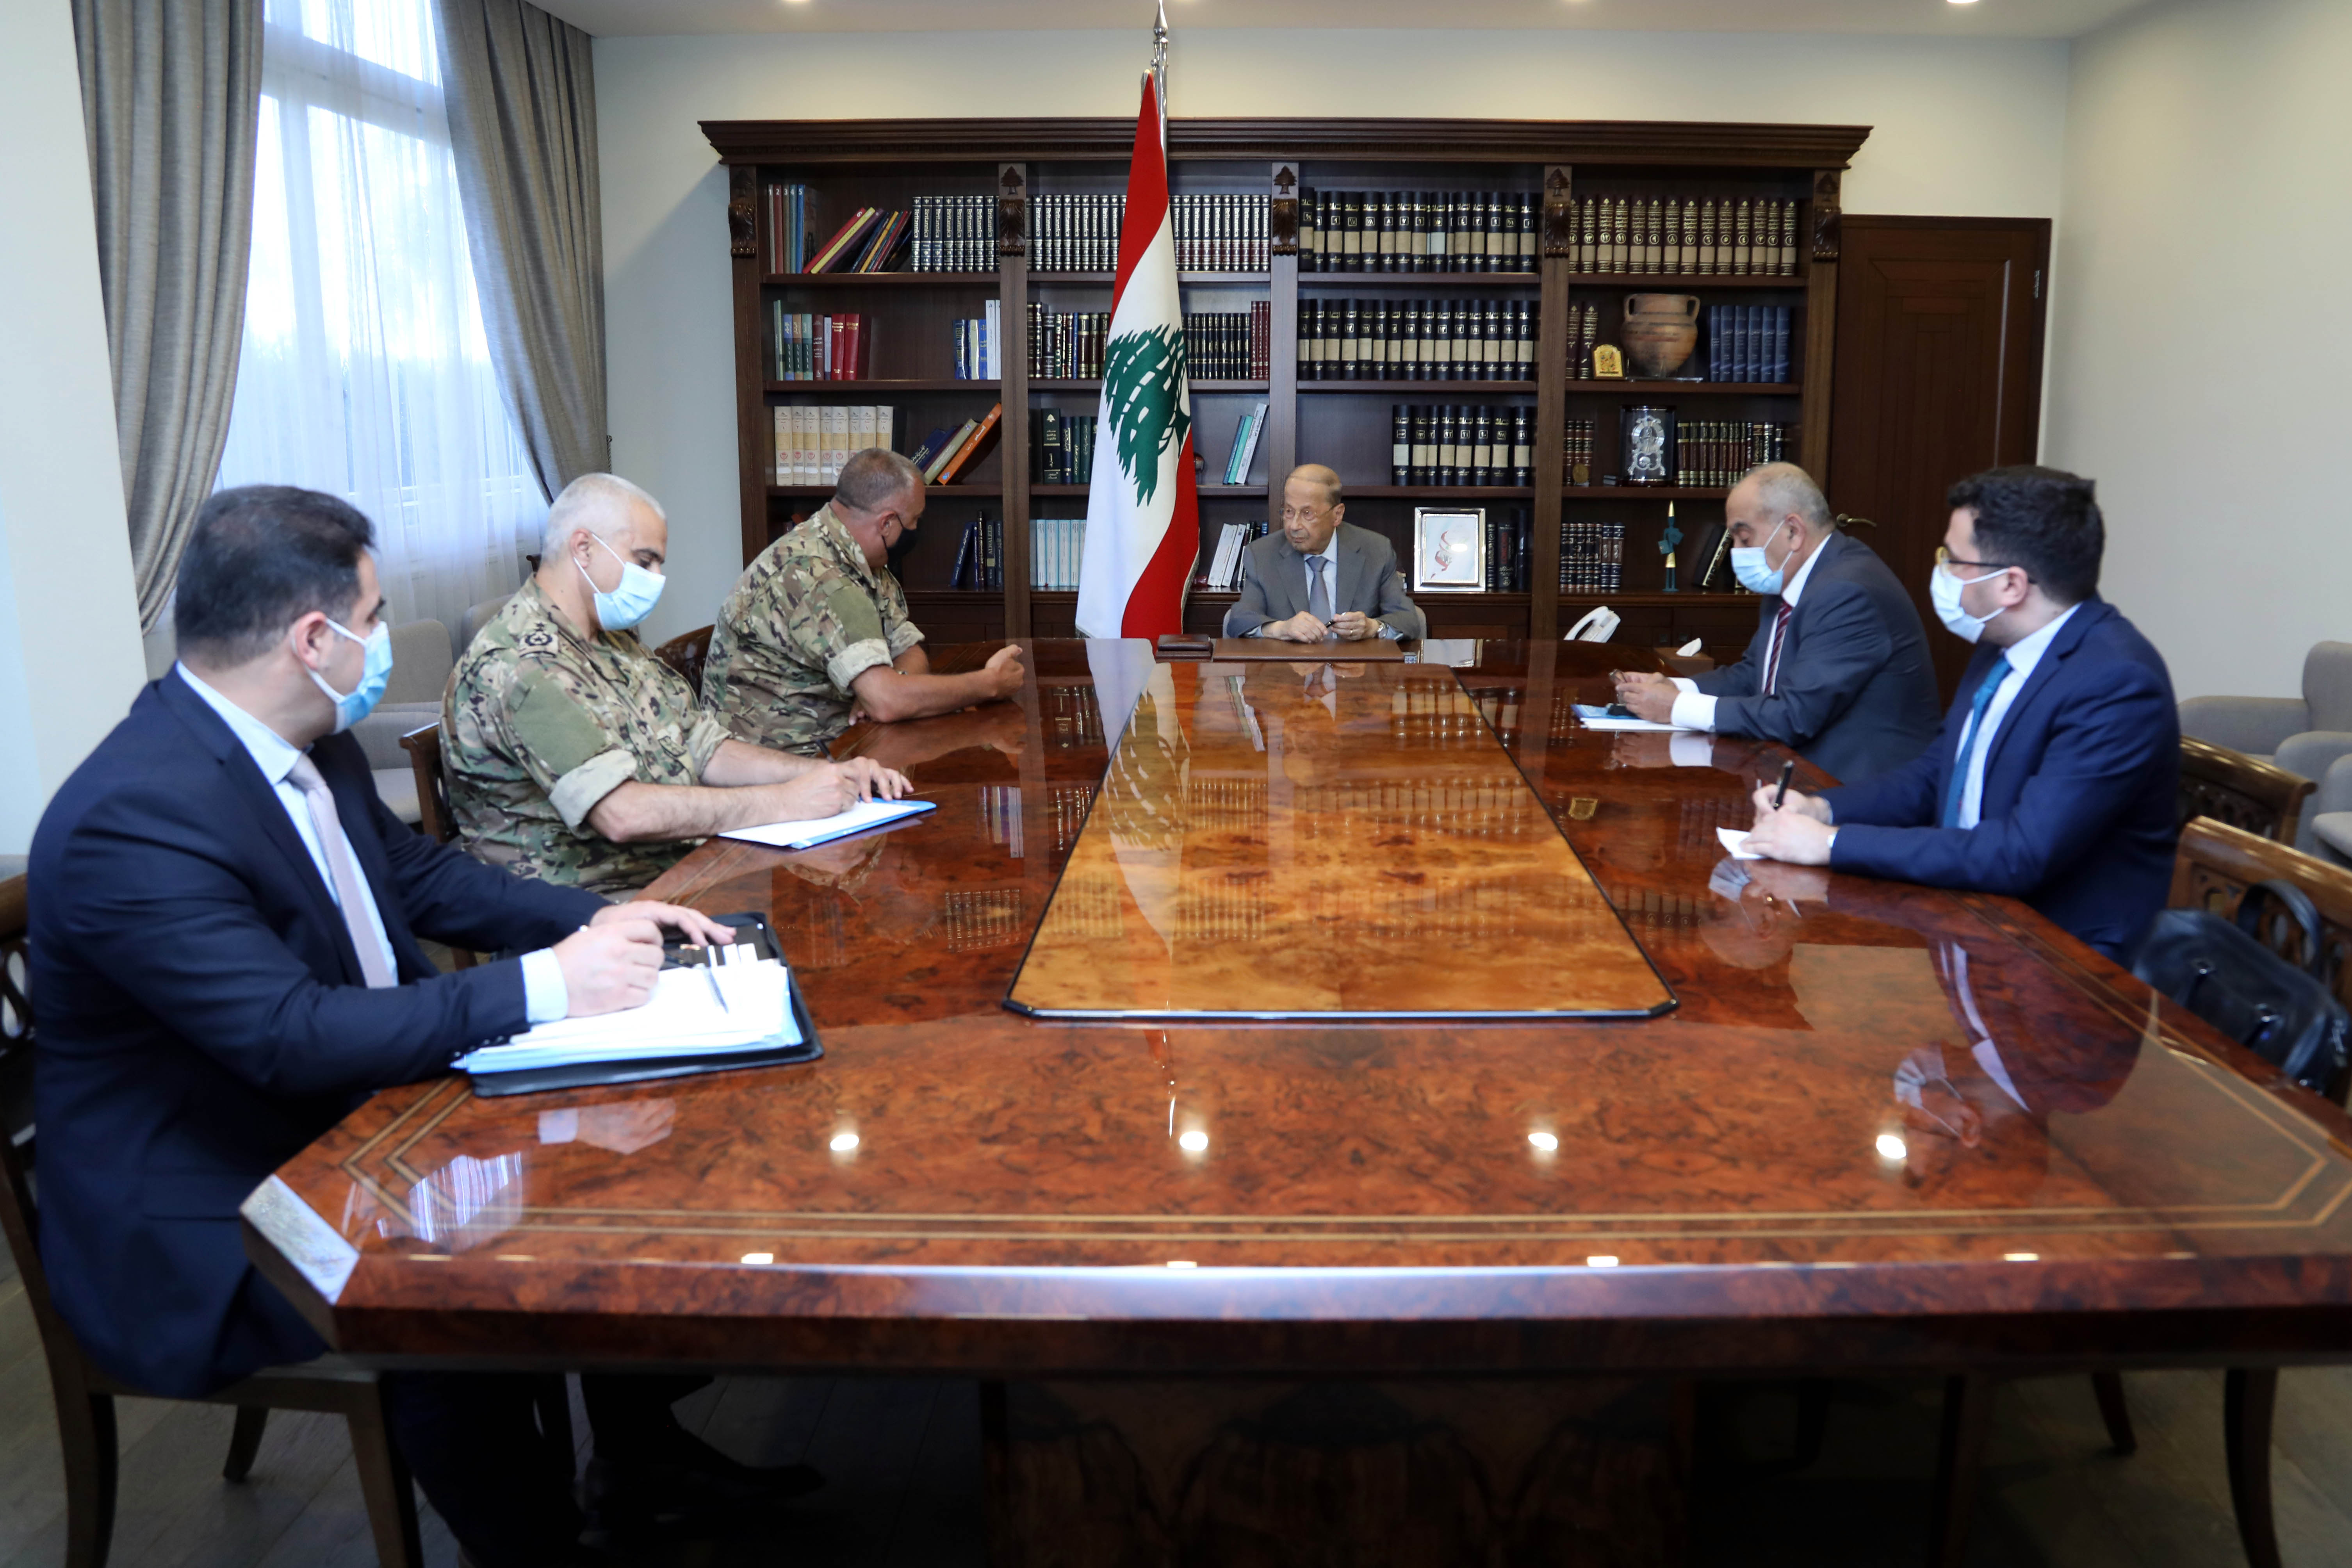 2- The Lebanese delegation in charge of indirect technical negotiations to demarcate the southern maritime borders